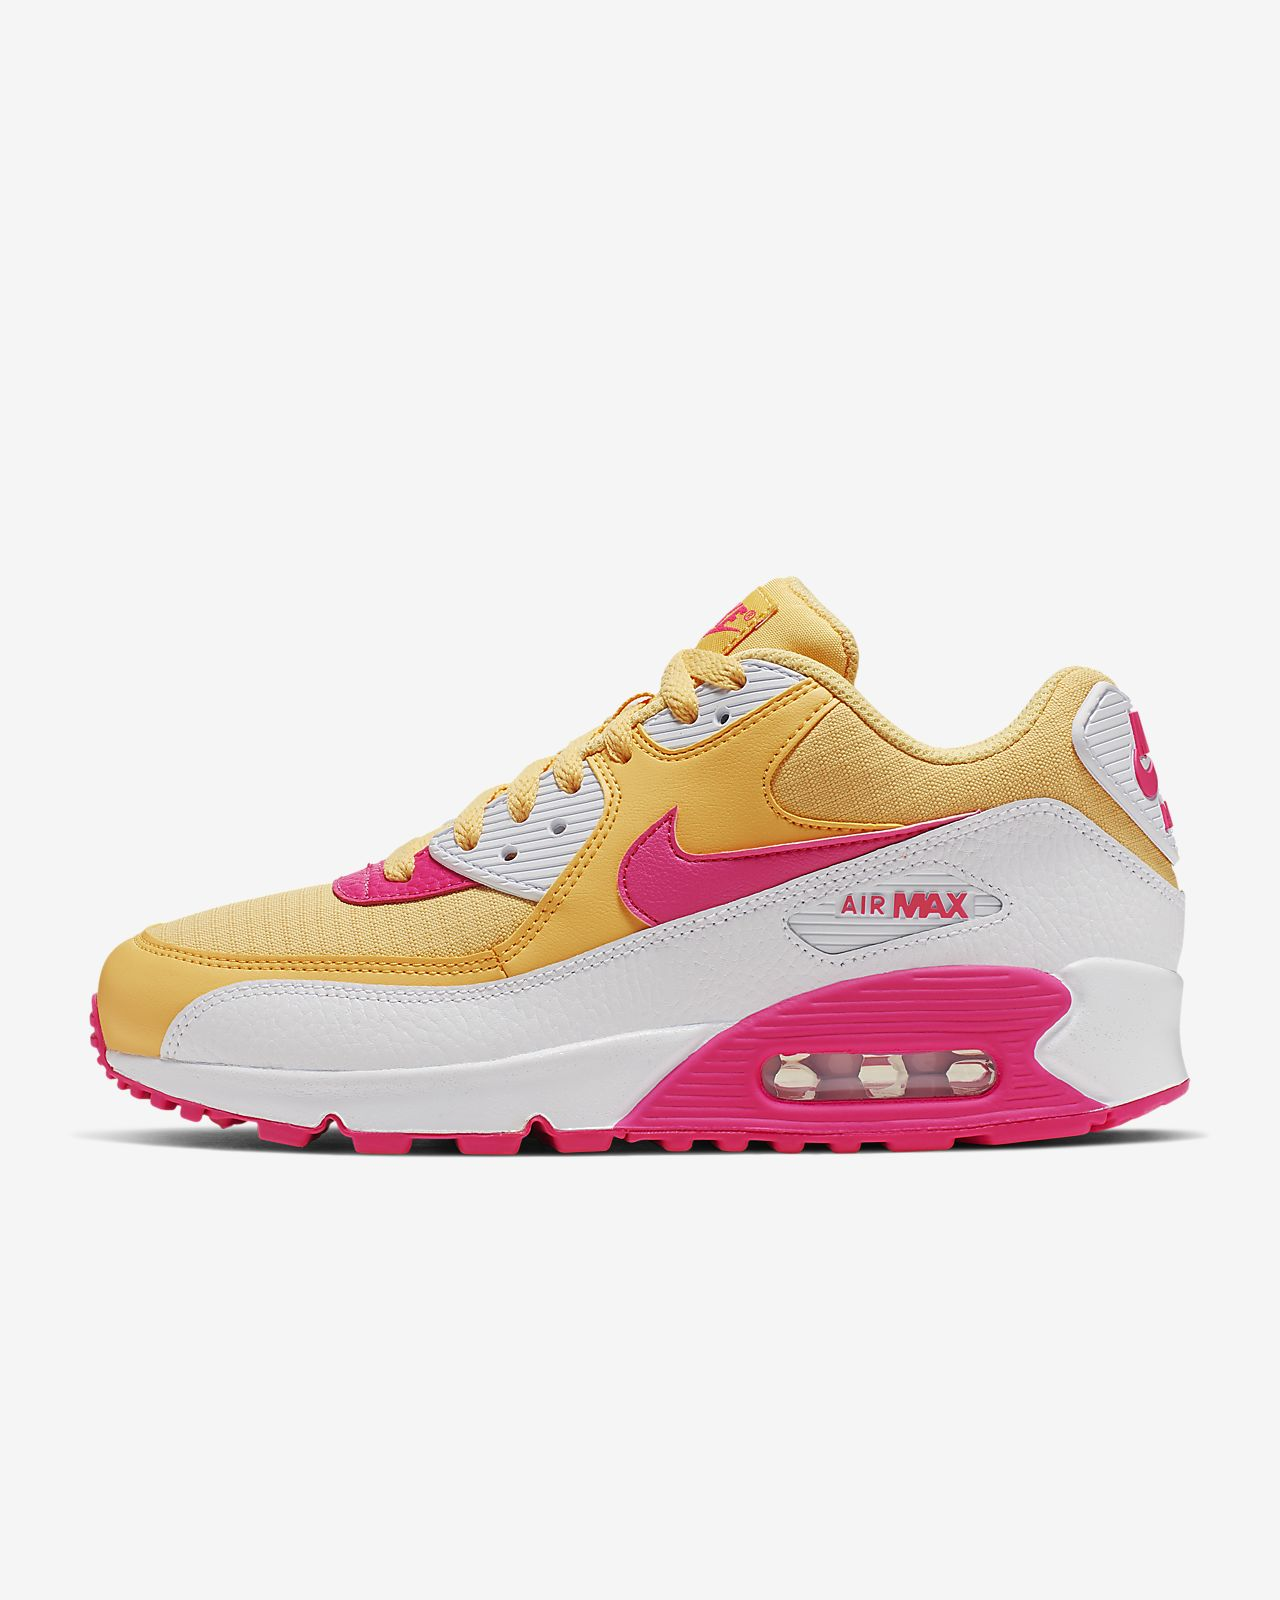 988bba57ab48 Nike Air Max 90 Women s Shoe. Nike.com